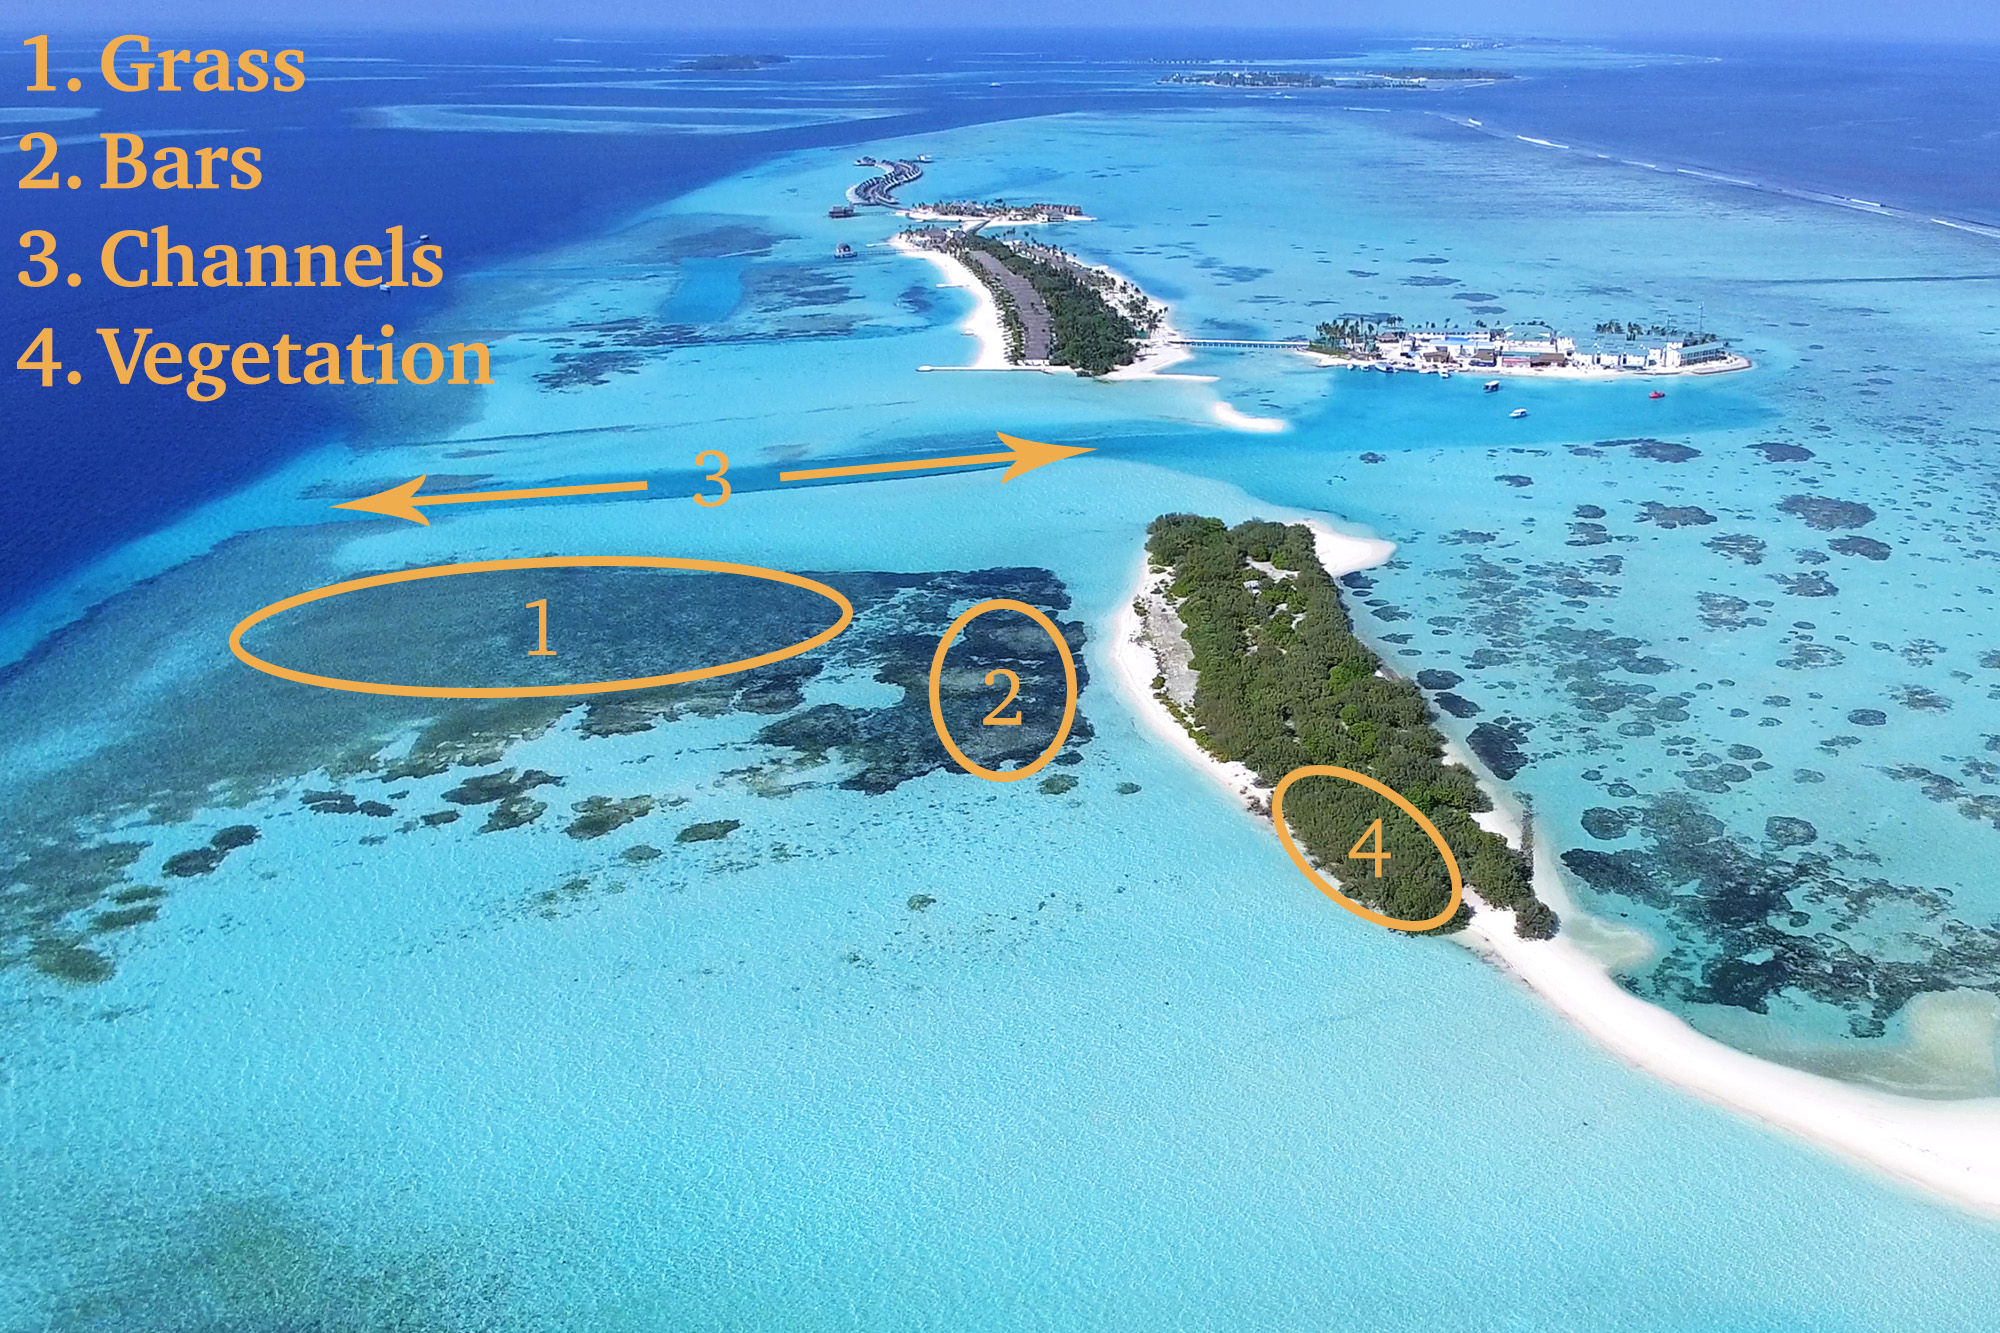 An annotated picture of shallow water in the Maldives, showing the main areas of the fishery: grass, bars, channels, and vegetation